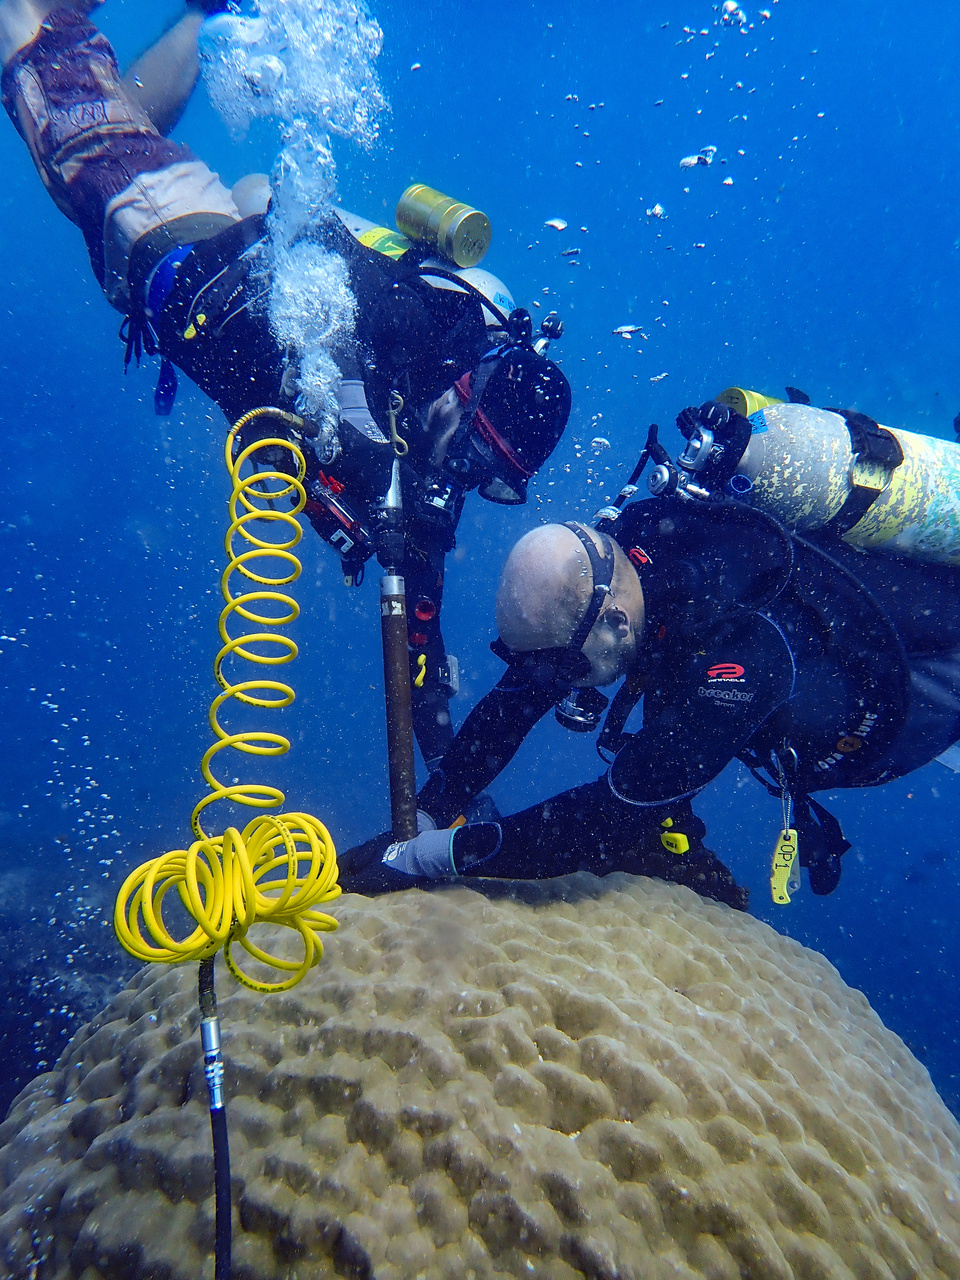 Scientists work carefully to extract a core of skeleton from a coral head. This core acts as a record, allowing scientists back in the lab to learn more about the coral's history and possible ocean conditions over time. (Photo: NOAA Fisheries/Hannah Barkley)